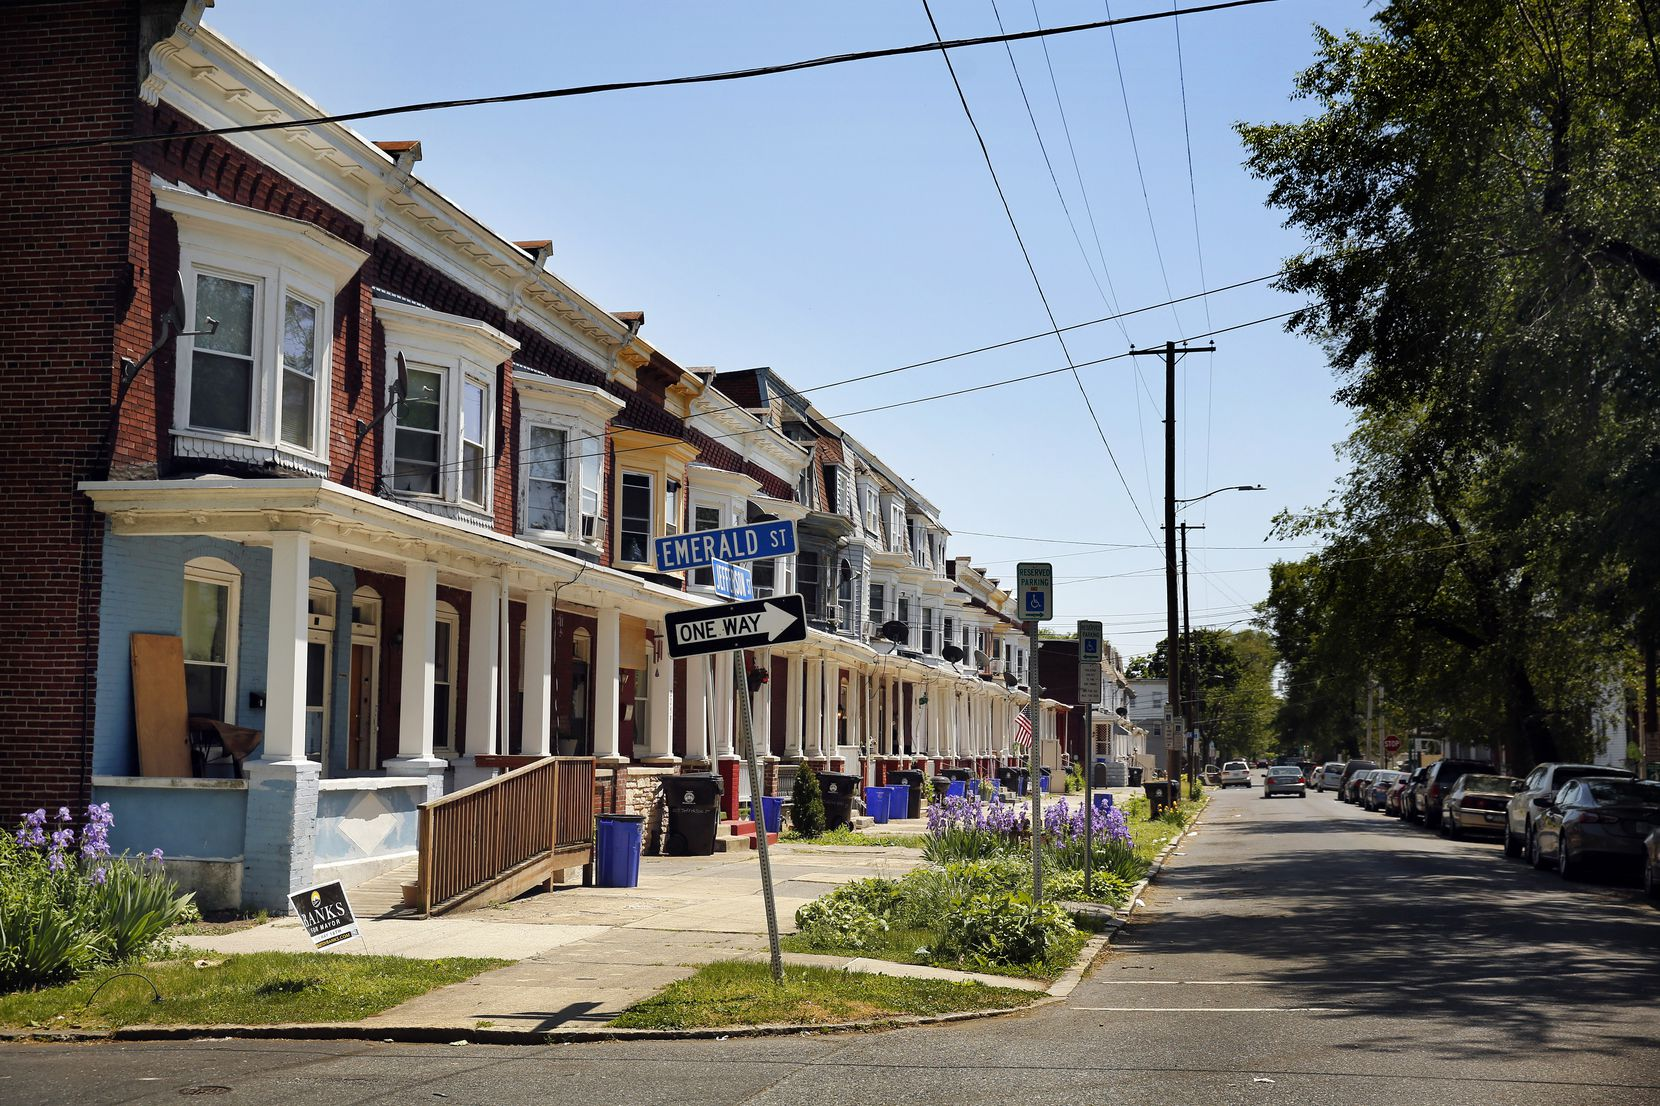 Dallas Cowboys first-round draft pick Micah Parsons grew up with his family in this row house at Jefferson and Emerald streets in Harrisburg, Pa., Wednesday, May 19, 2021.